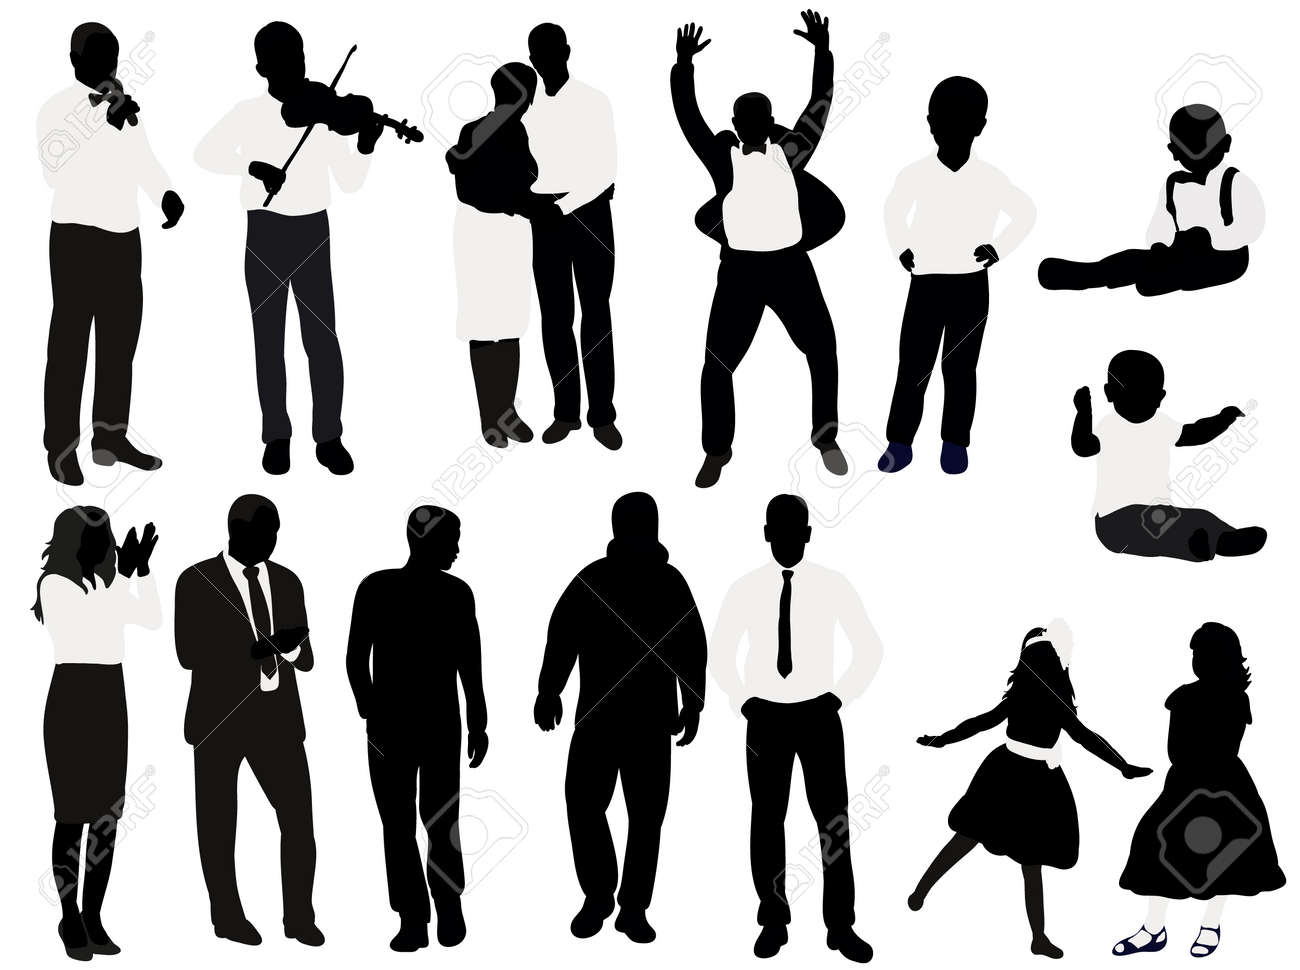 Vector, isolated, black and white silhouette people, collection, set - 154021204